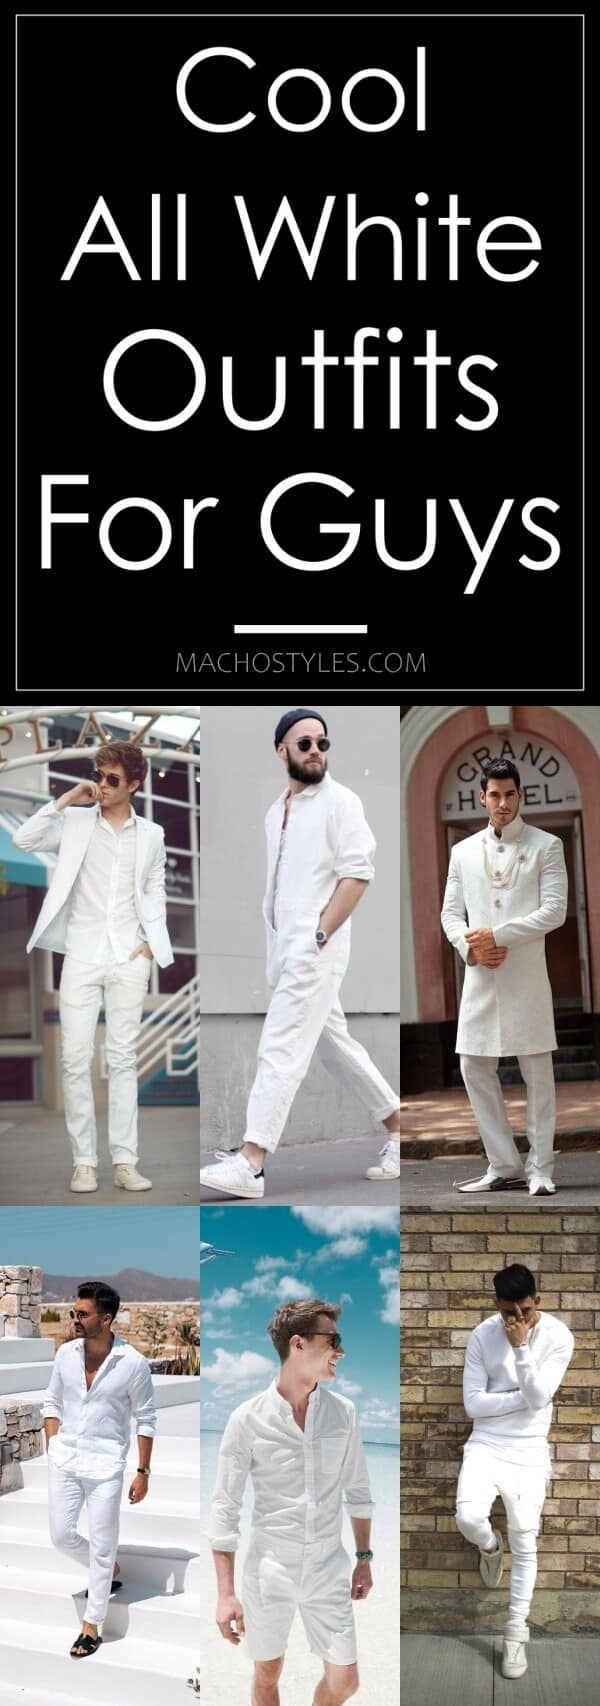 Cool All White Outfits For Guys